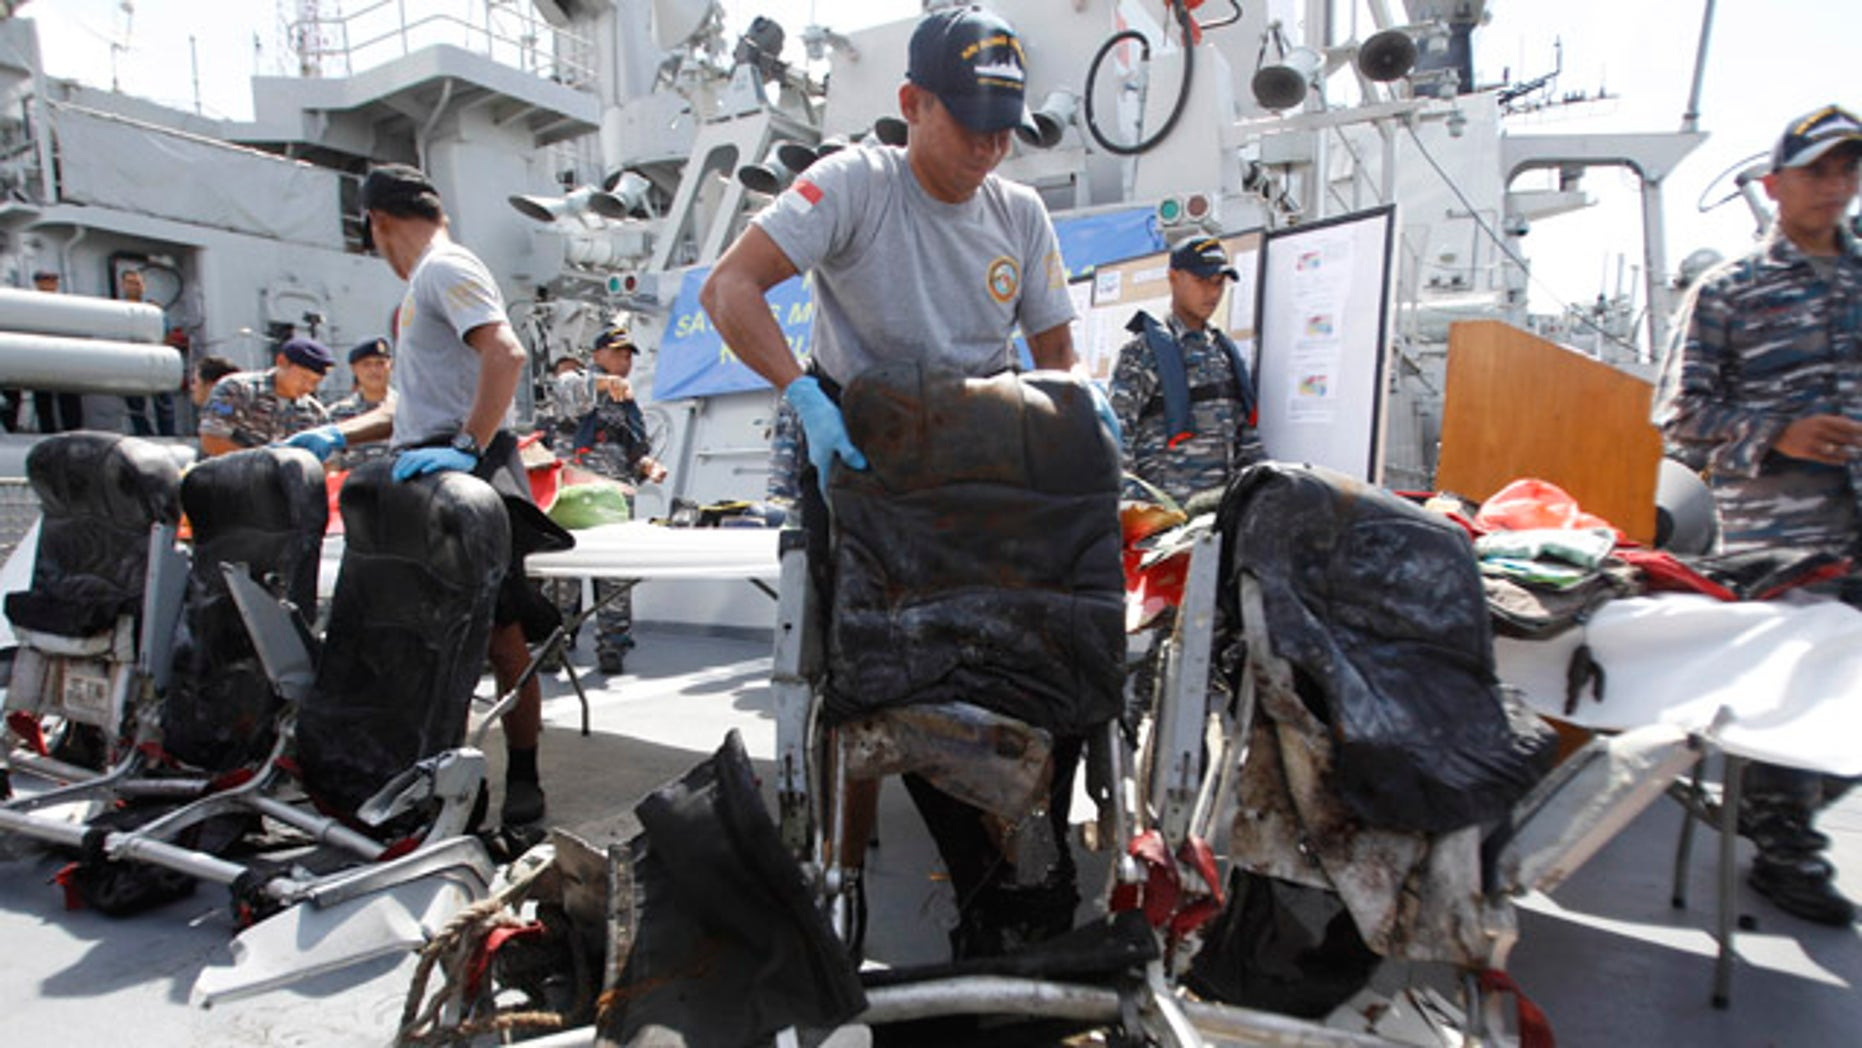 Jan. 5, 2015: Crew members of Indonesian Navy ship KRI Bung Tomo show airplane seats from AirAsia Flight 8501 recovered during search operations for the ill-fated jetliner during a press conference at the Navy's Eastern Fleet Naval Base in Surabaya, East Java.  (AP Photo/Trisnadi)